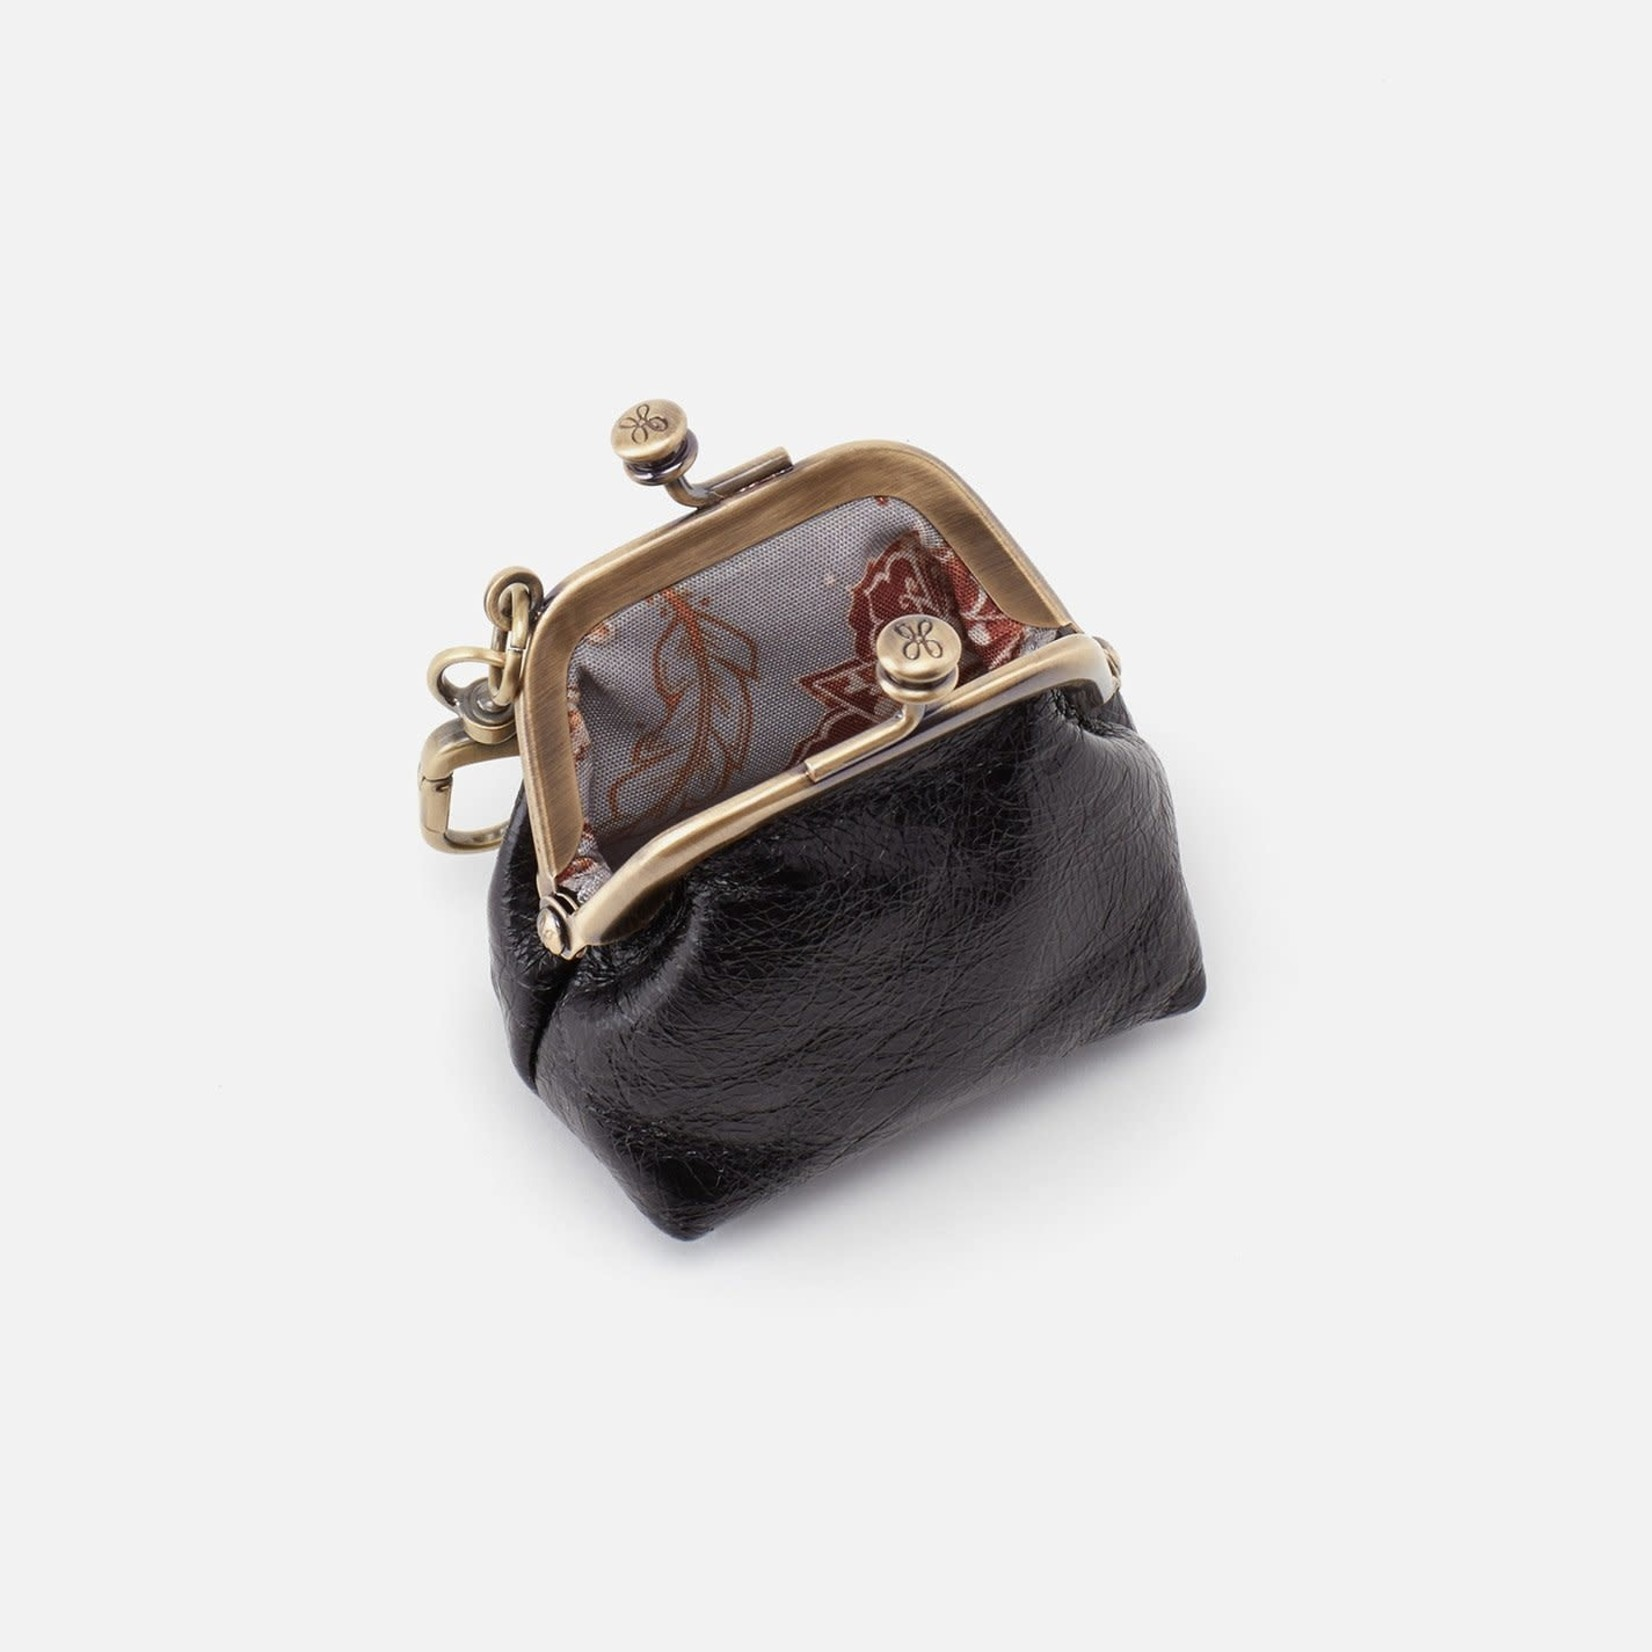 HOBO Run Black Soft Leather Frame Pouch